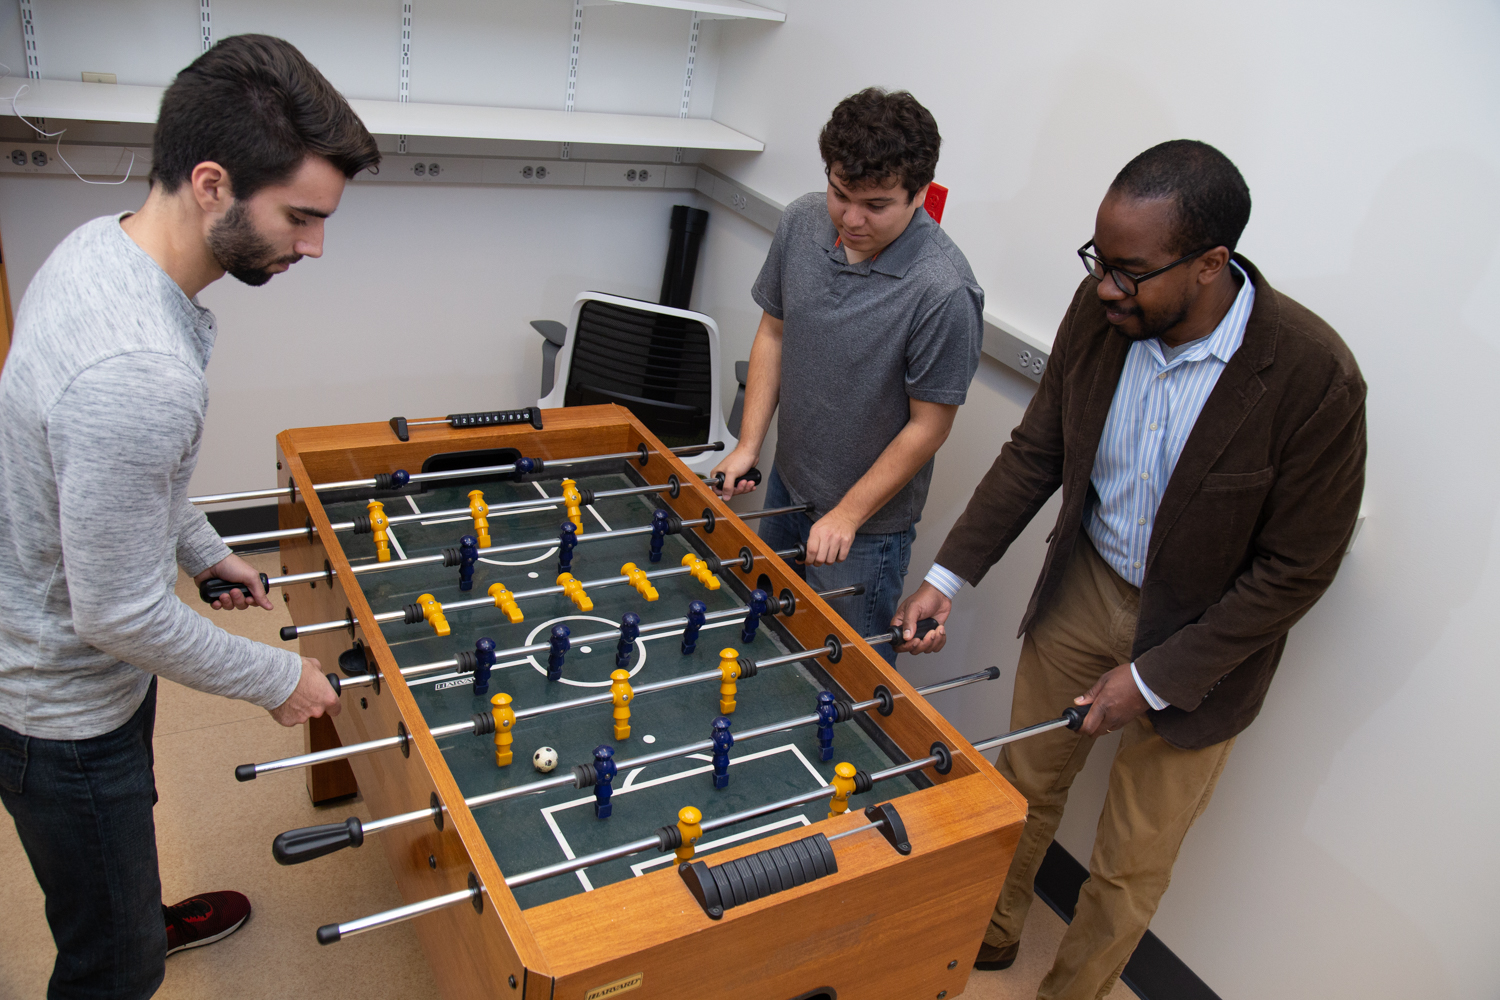 Wilsaan Joiner and lab members play some foosball